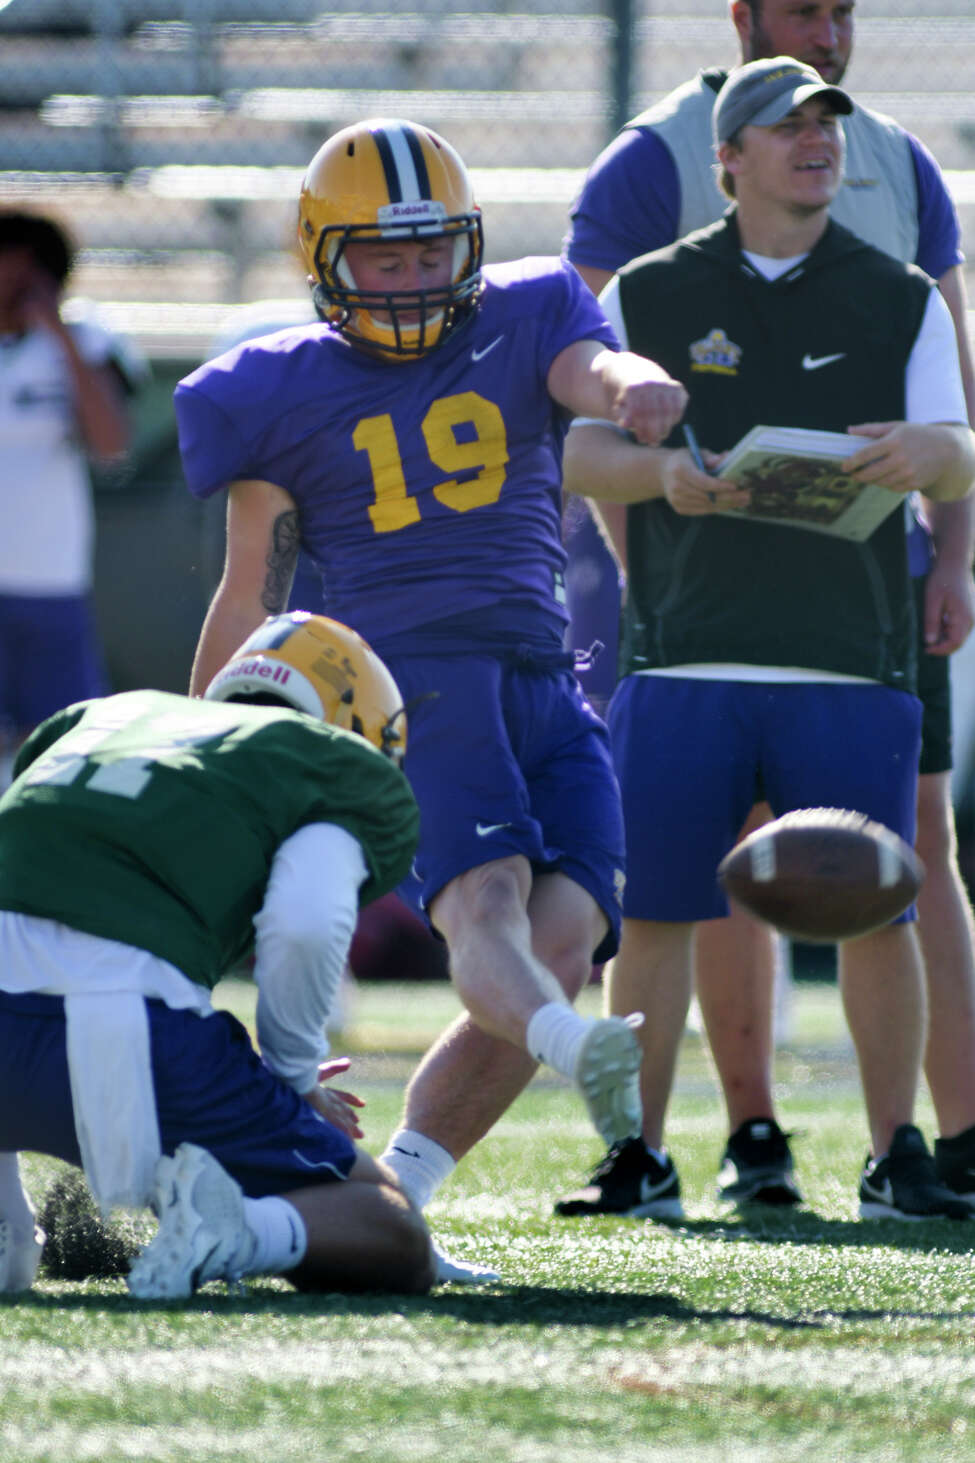 UAlbany football kicker Dylan Burns during practice on Tuesday, Aug. 20, 2019, in Albany, N.Y. (Paul Buckowski/Times Union)